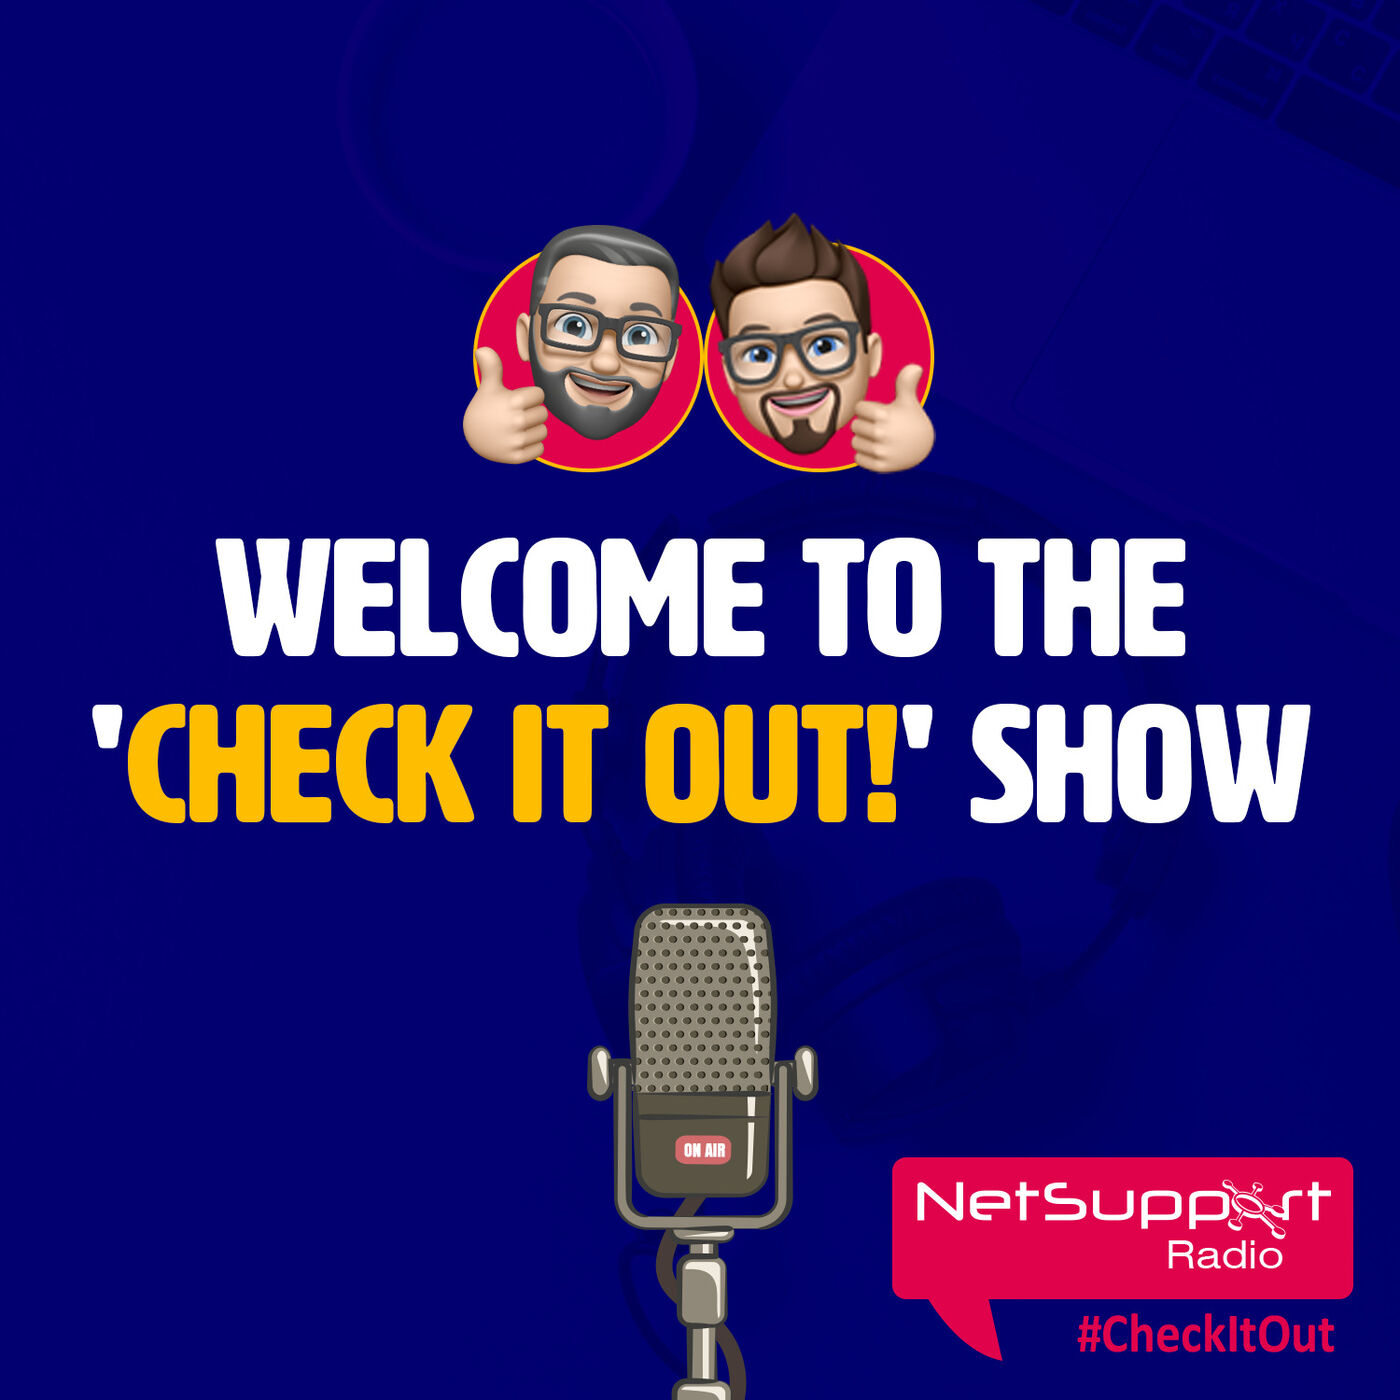 The 'Check it out!' show - November Edition